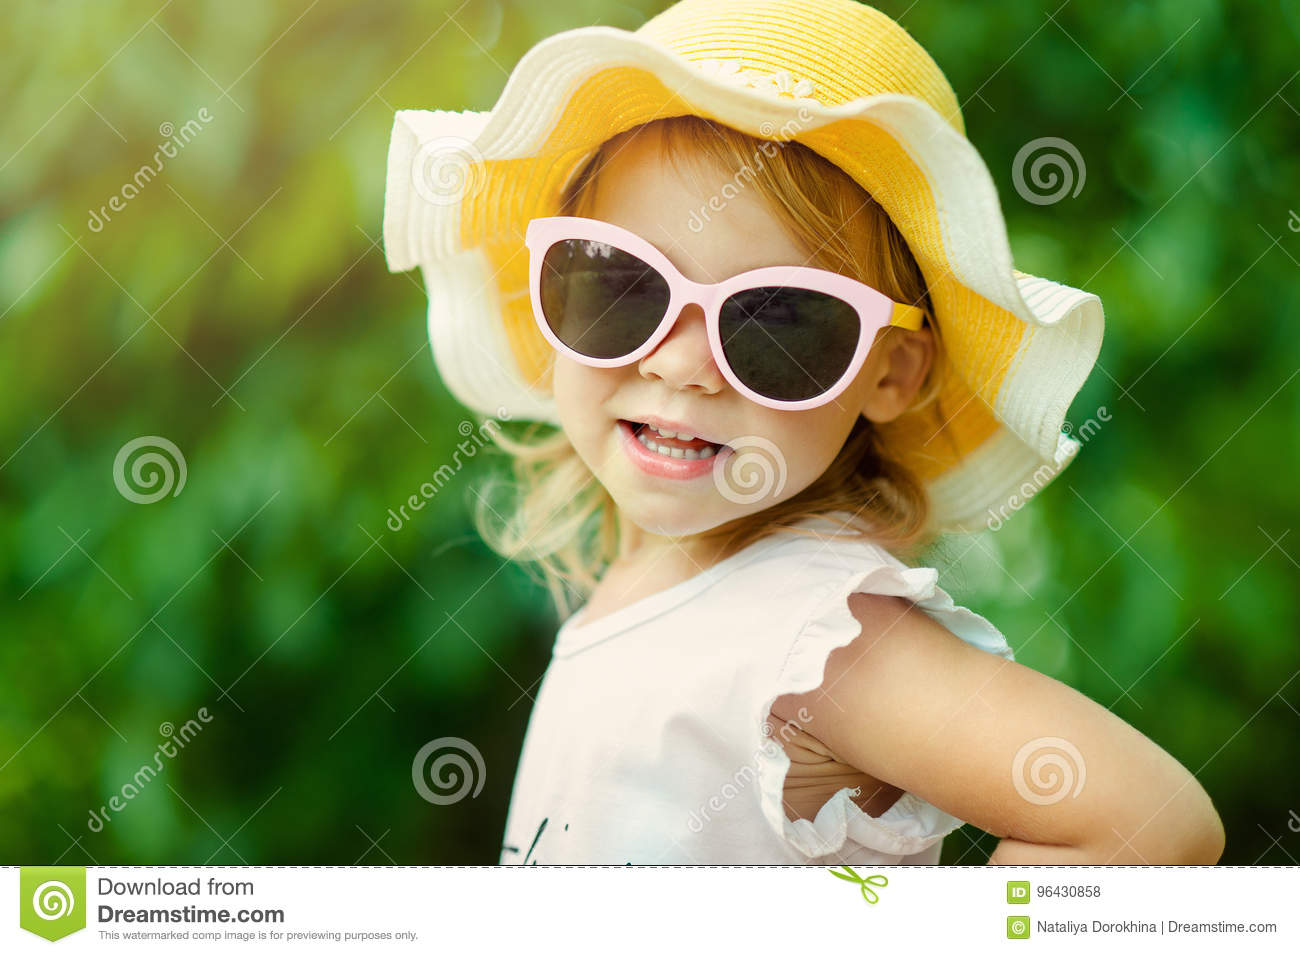 Pretty little girl in a striped dress and hat relaxing on the beach near sea, summer, vacation, travel concept. smiling